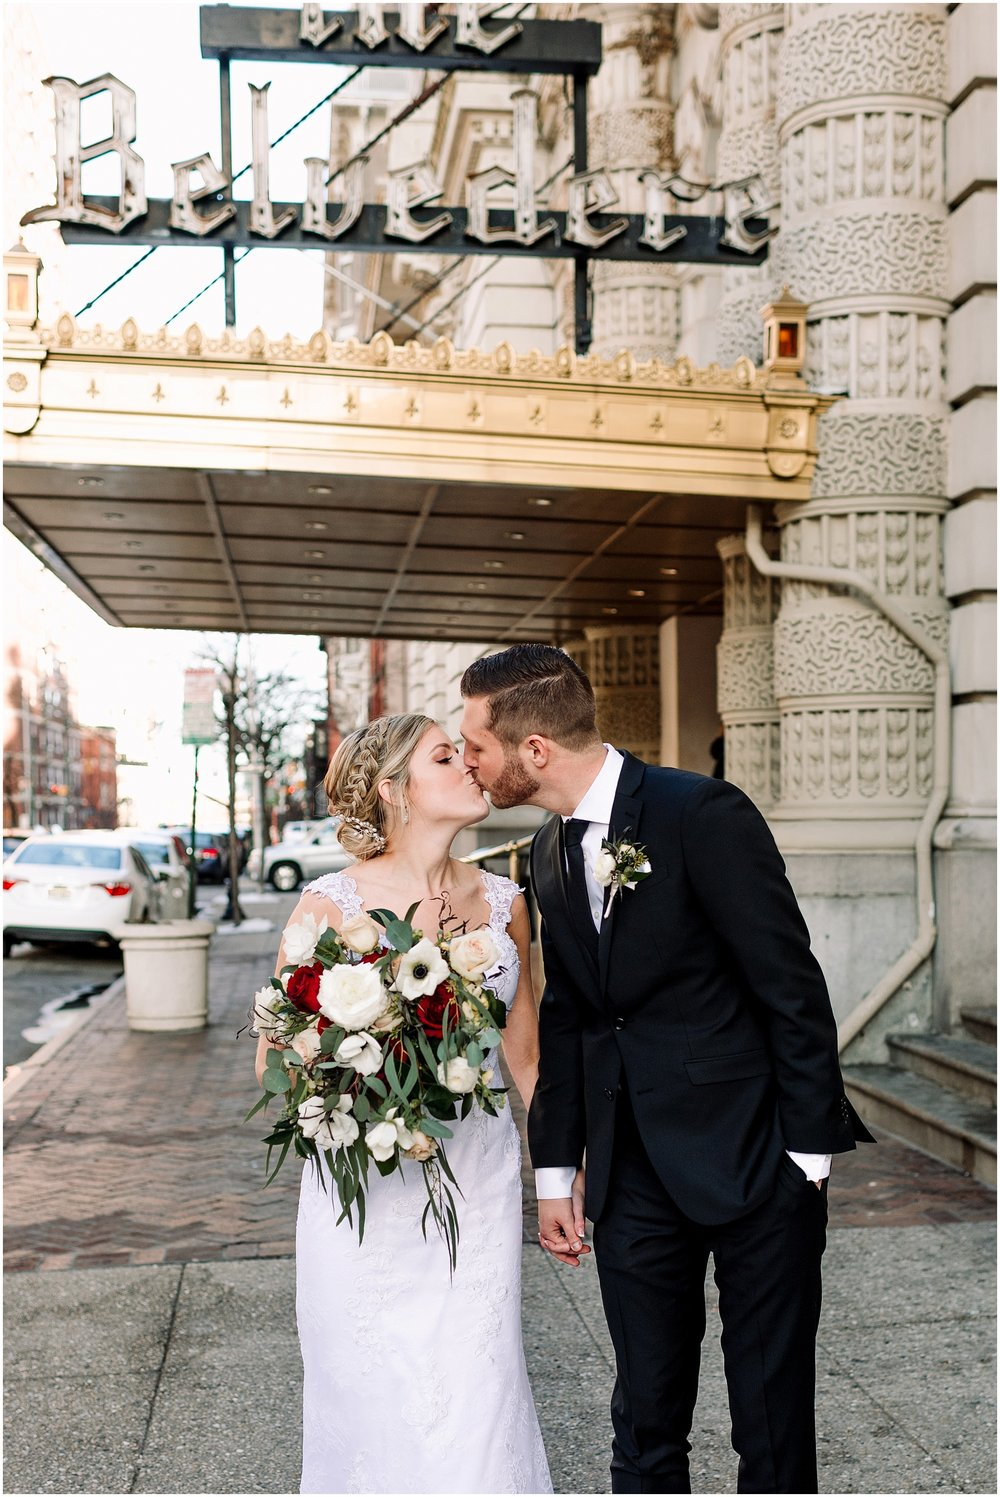 Hannah Leigh Photography Belvedere Wedding Baltimore MD_7256.jpg